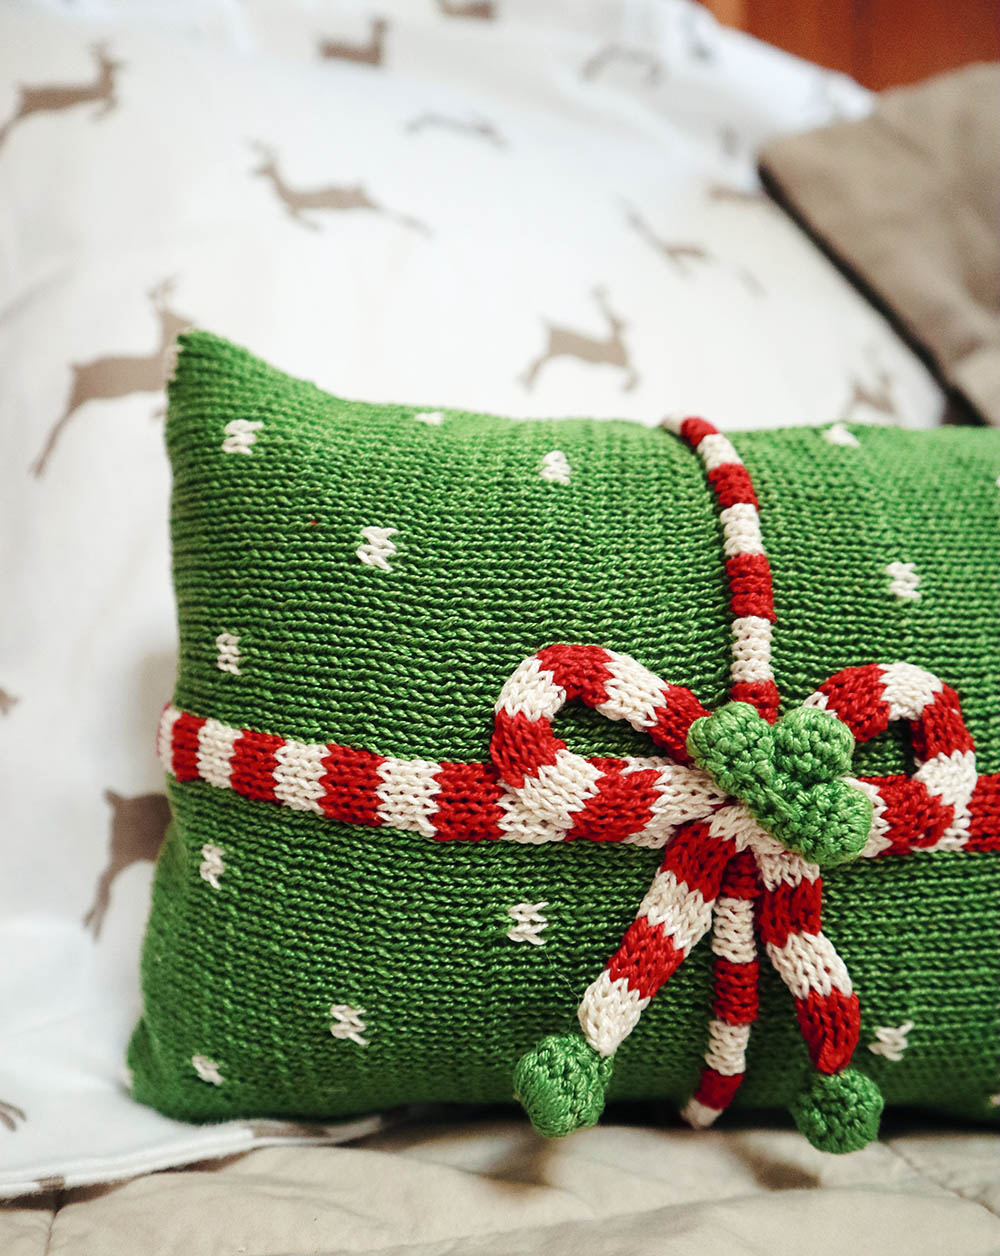 blog_tinycanalcottage_holidaypillow.jpg